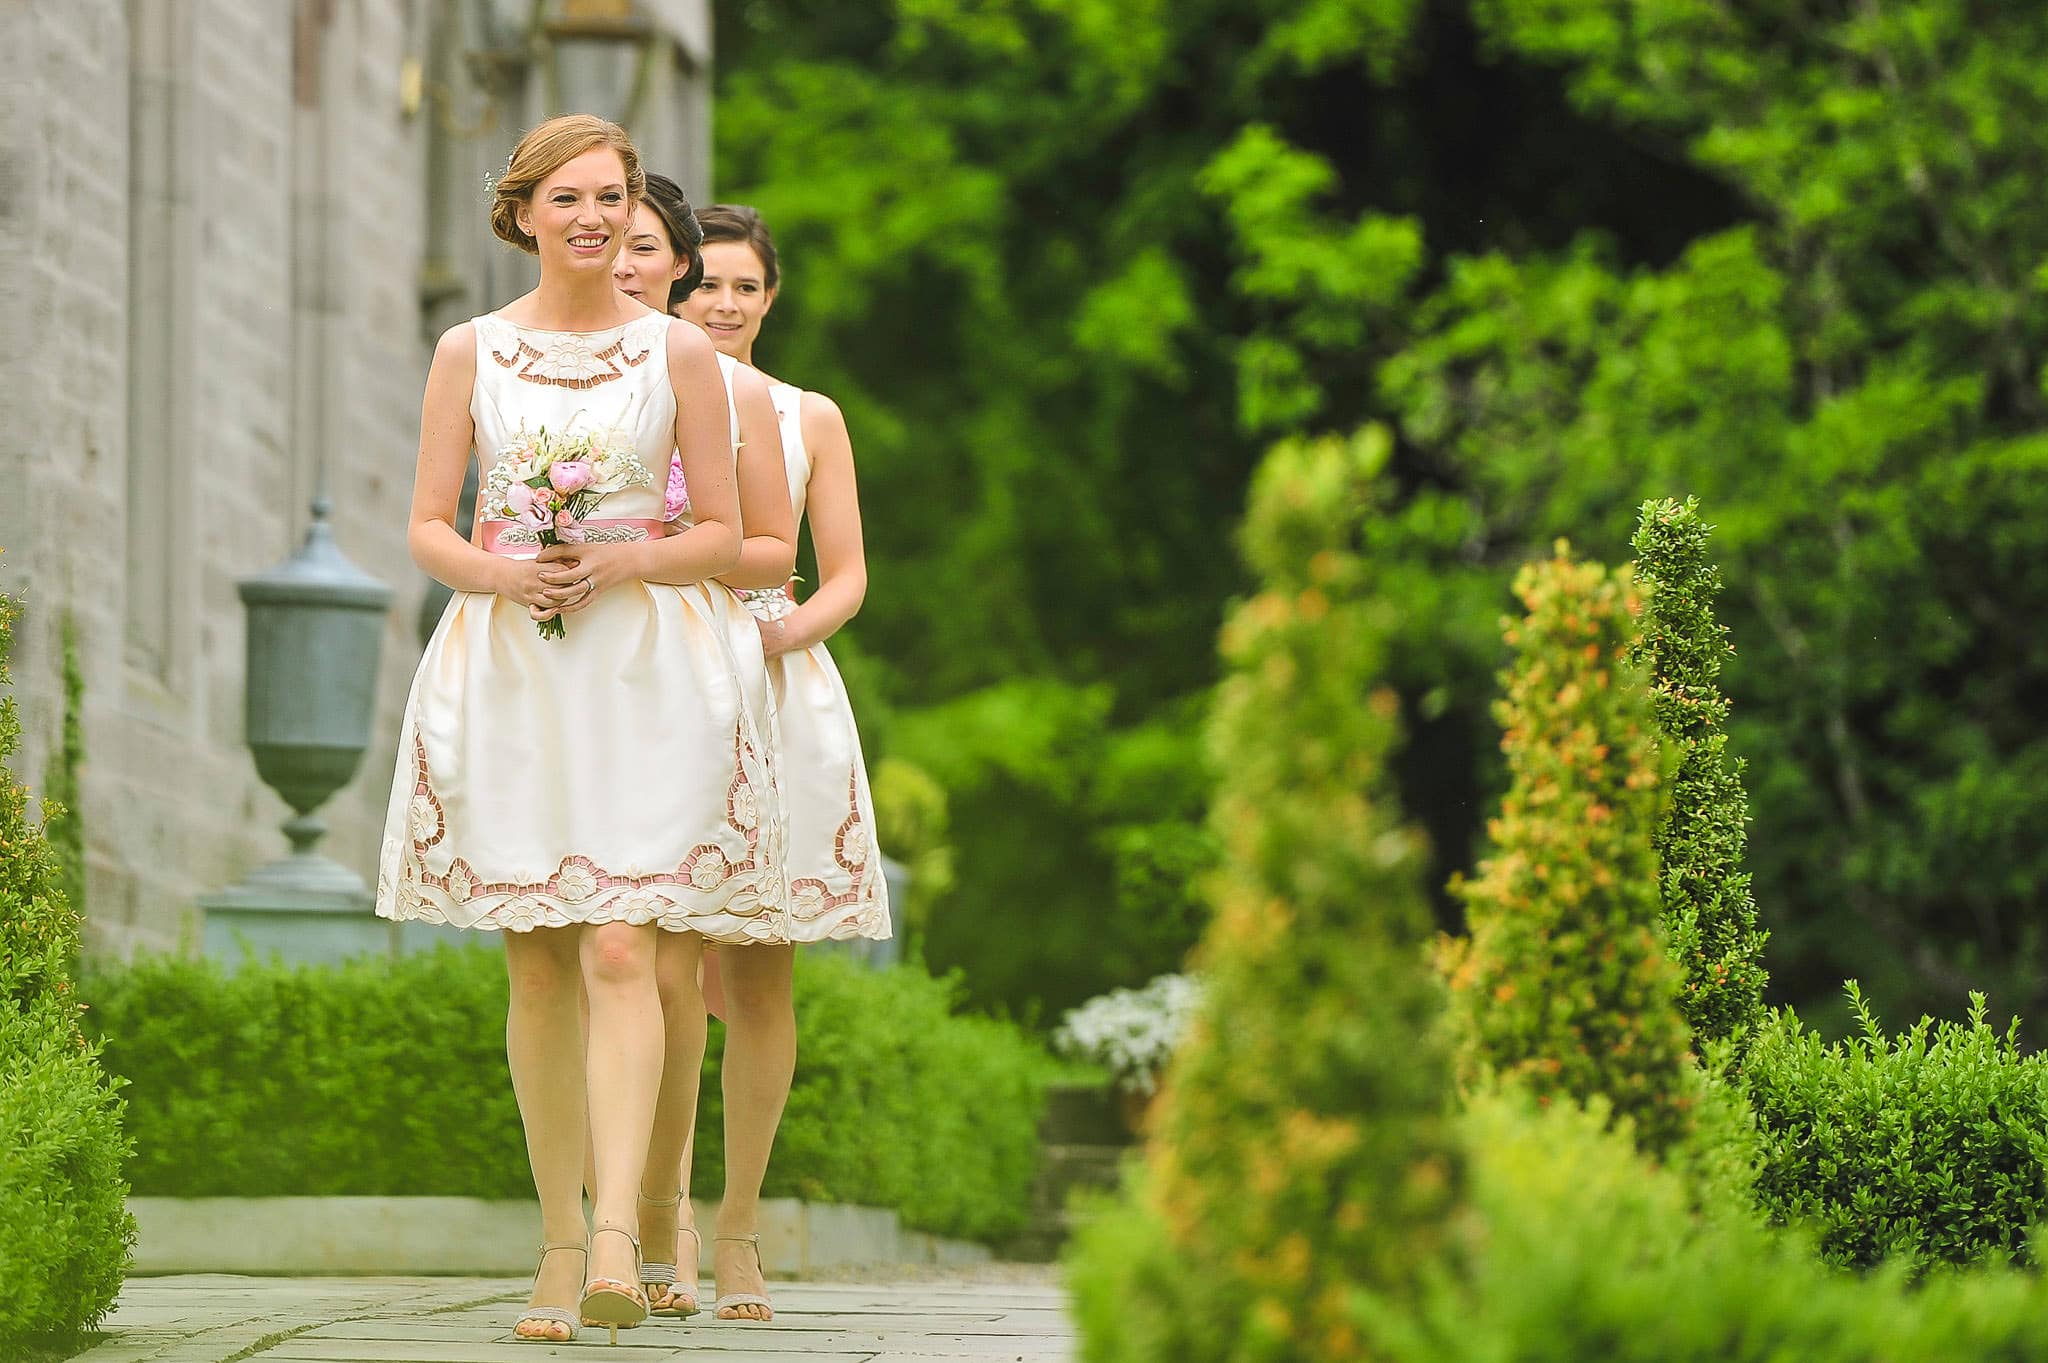 Lemore Manor Wedding Photographer | Hannah and Angus 16